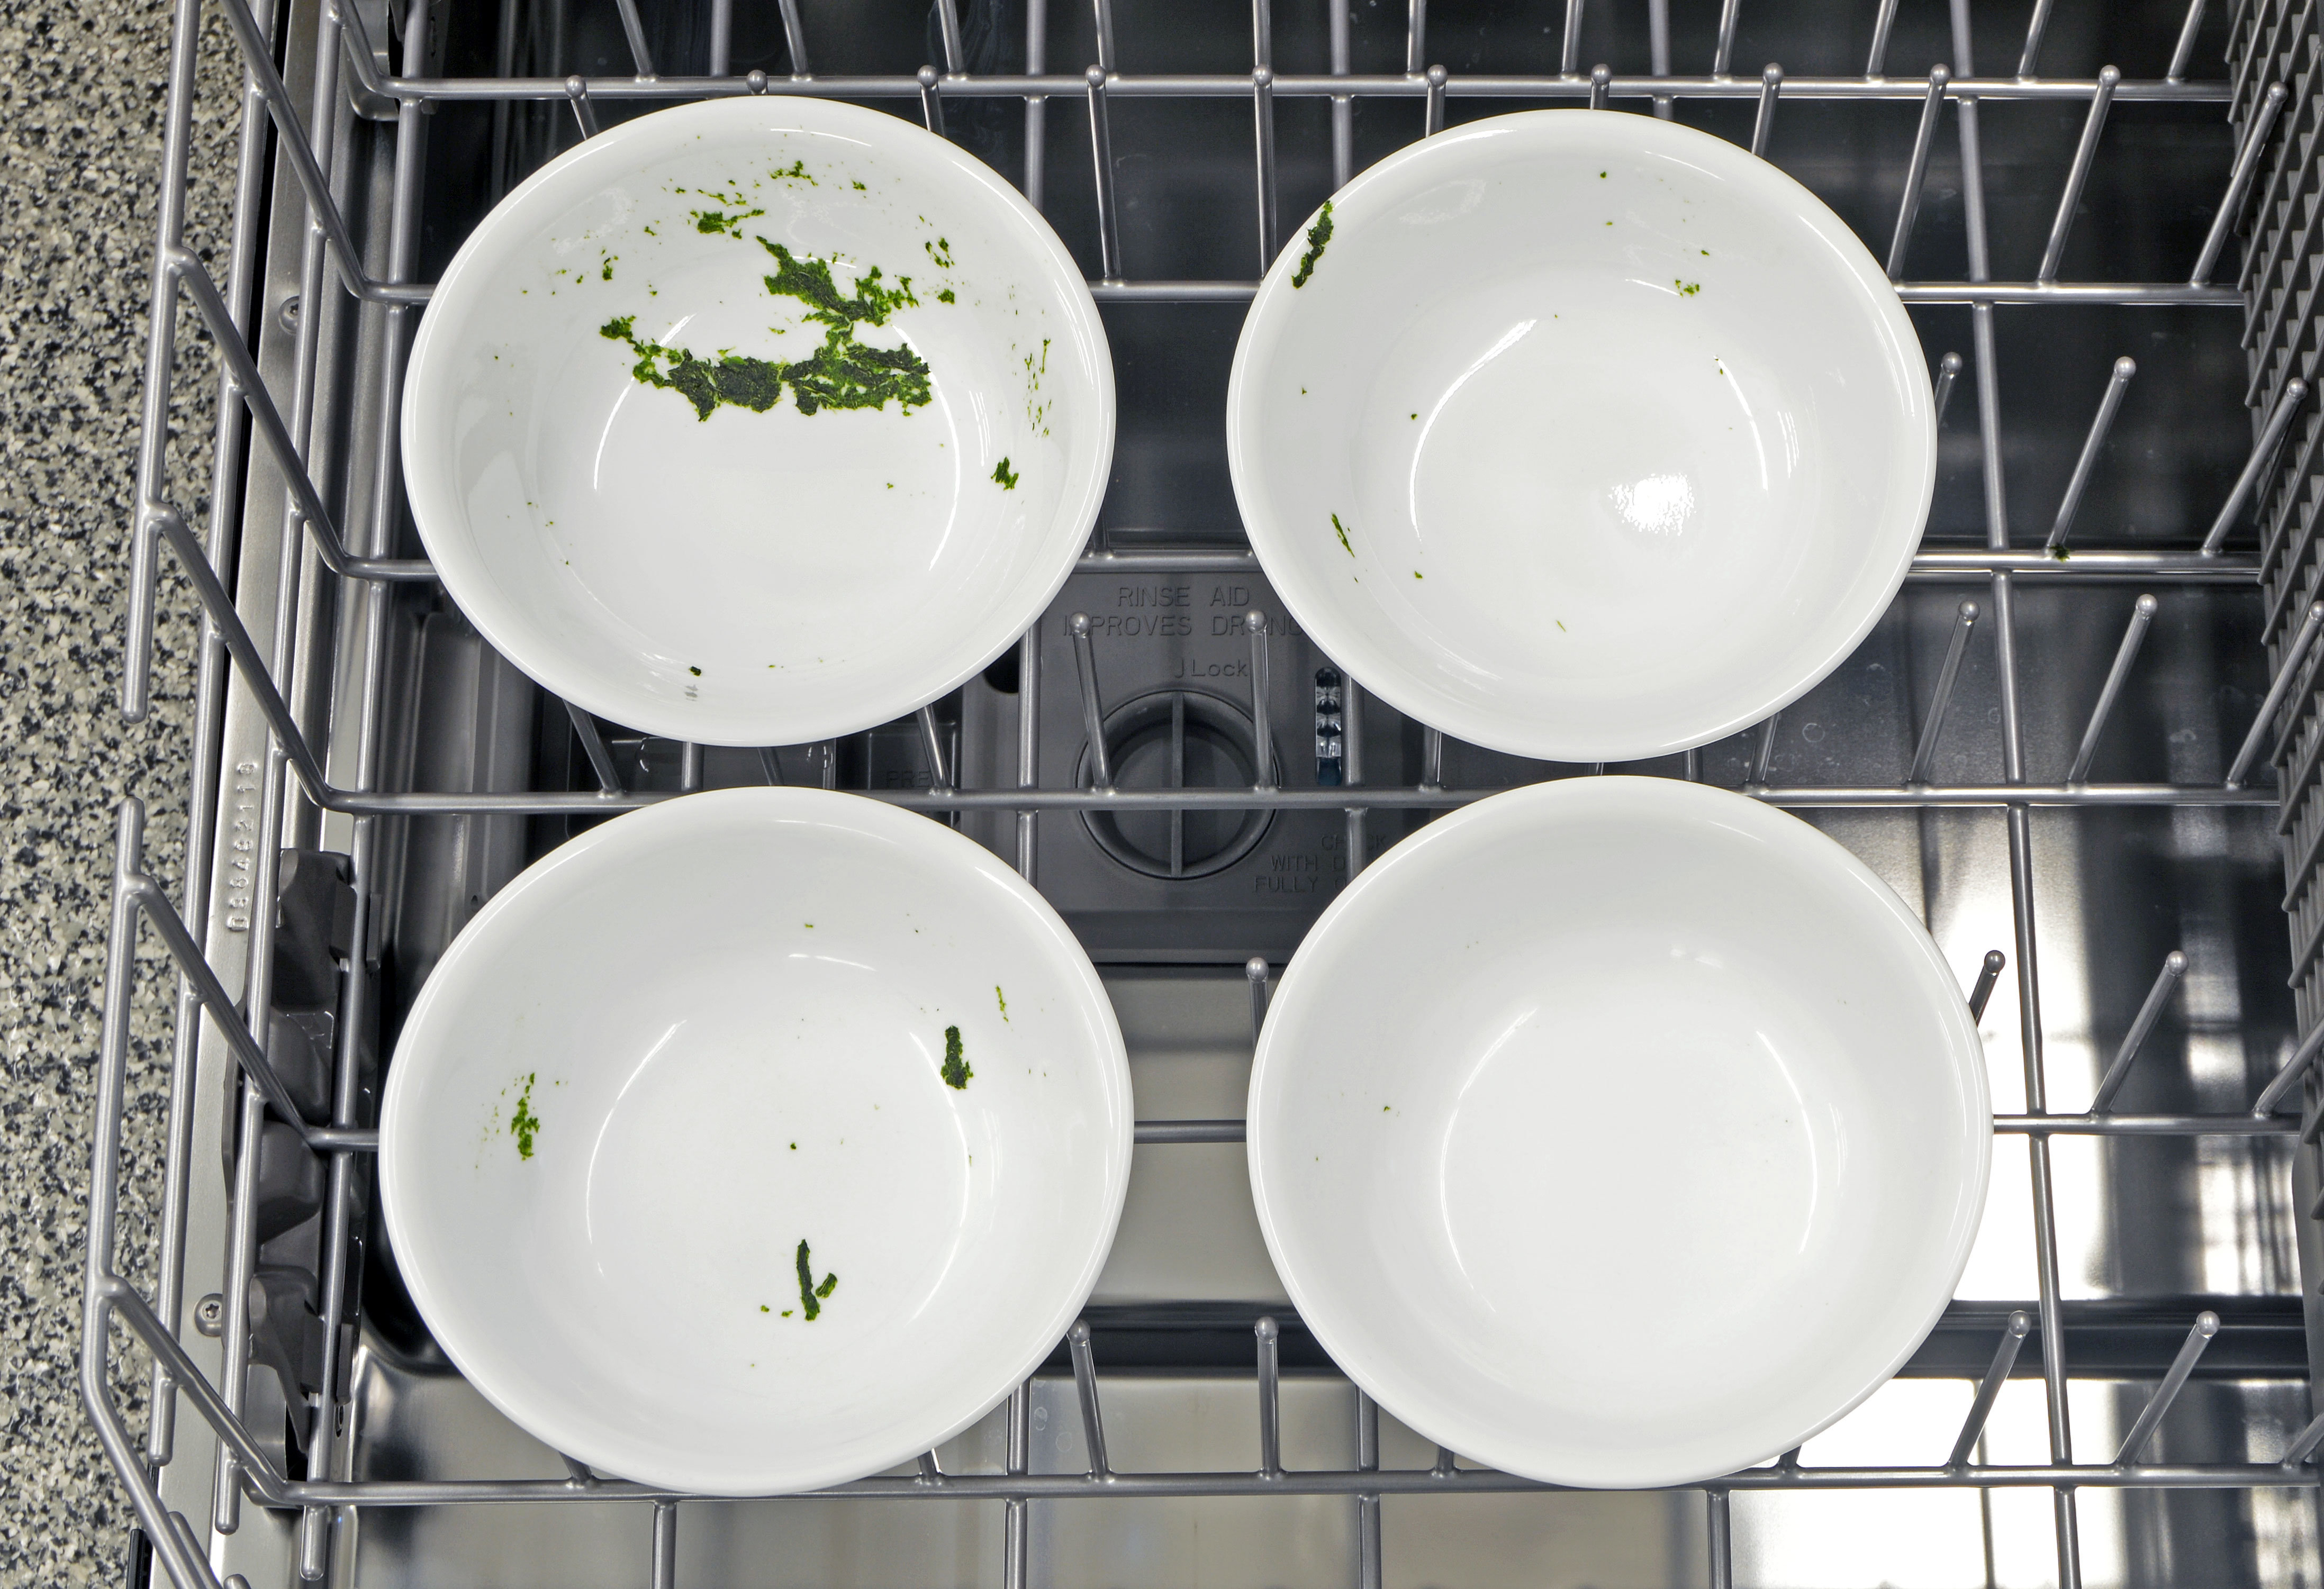 These are the spinach results from the Normal cycle. As you can see, the IKEA Renlig IUD8555DX only came close to cleaning one of the four bowls.